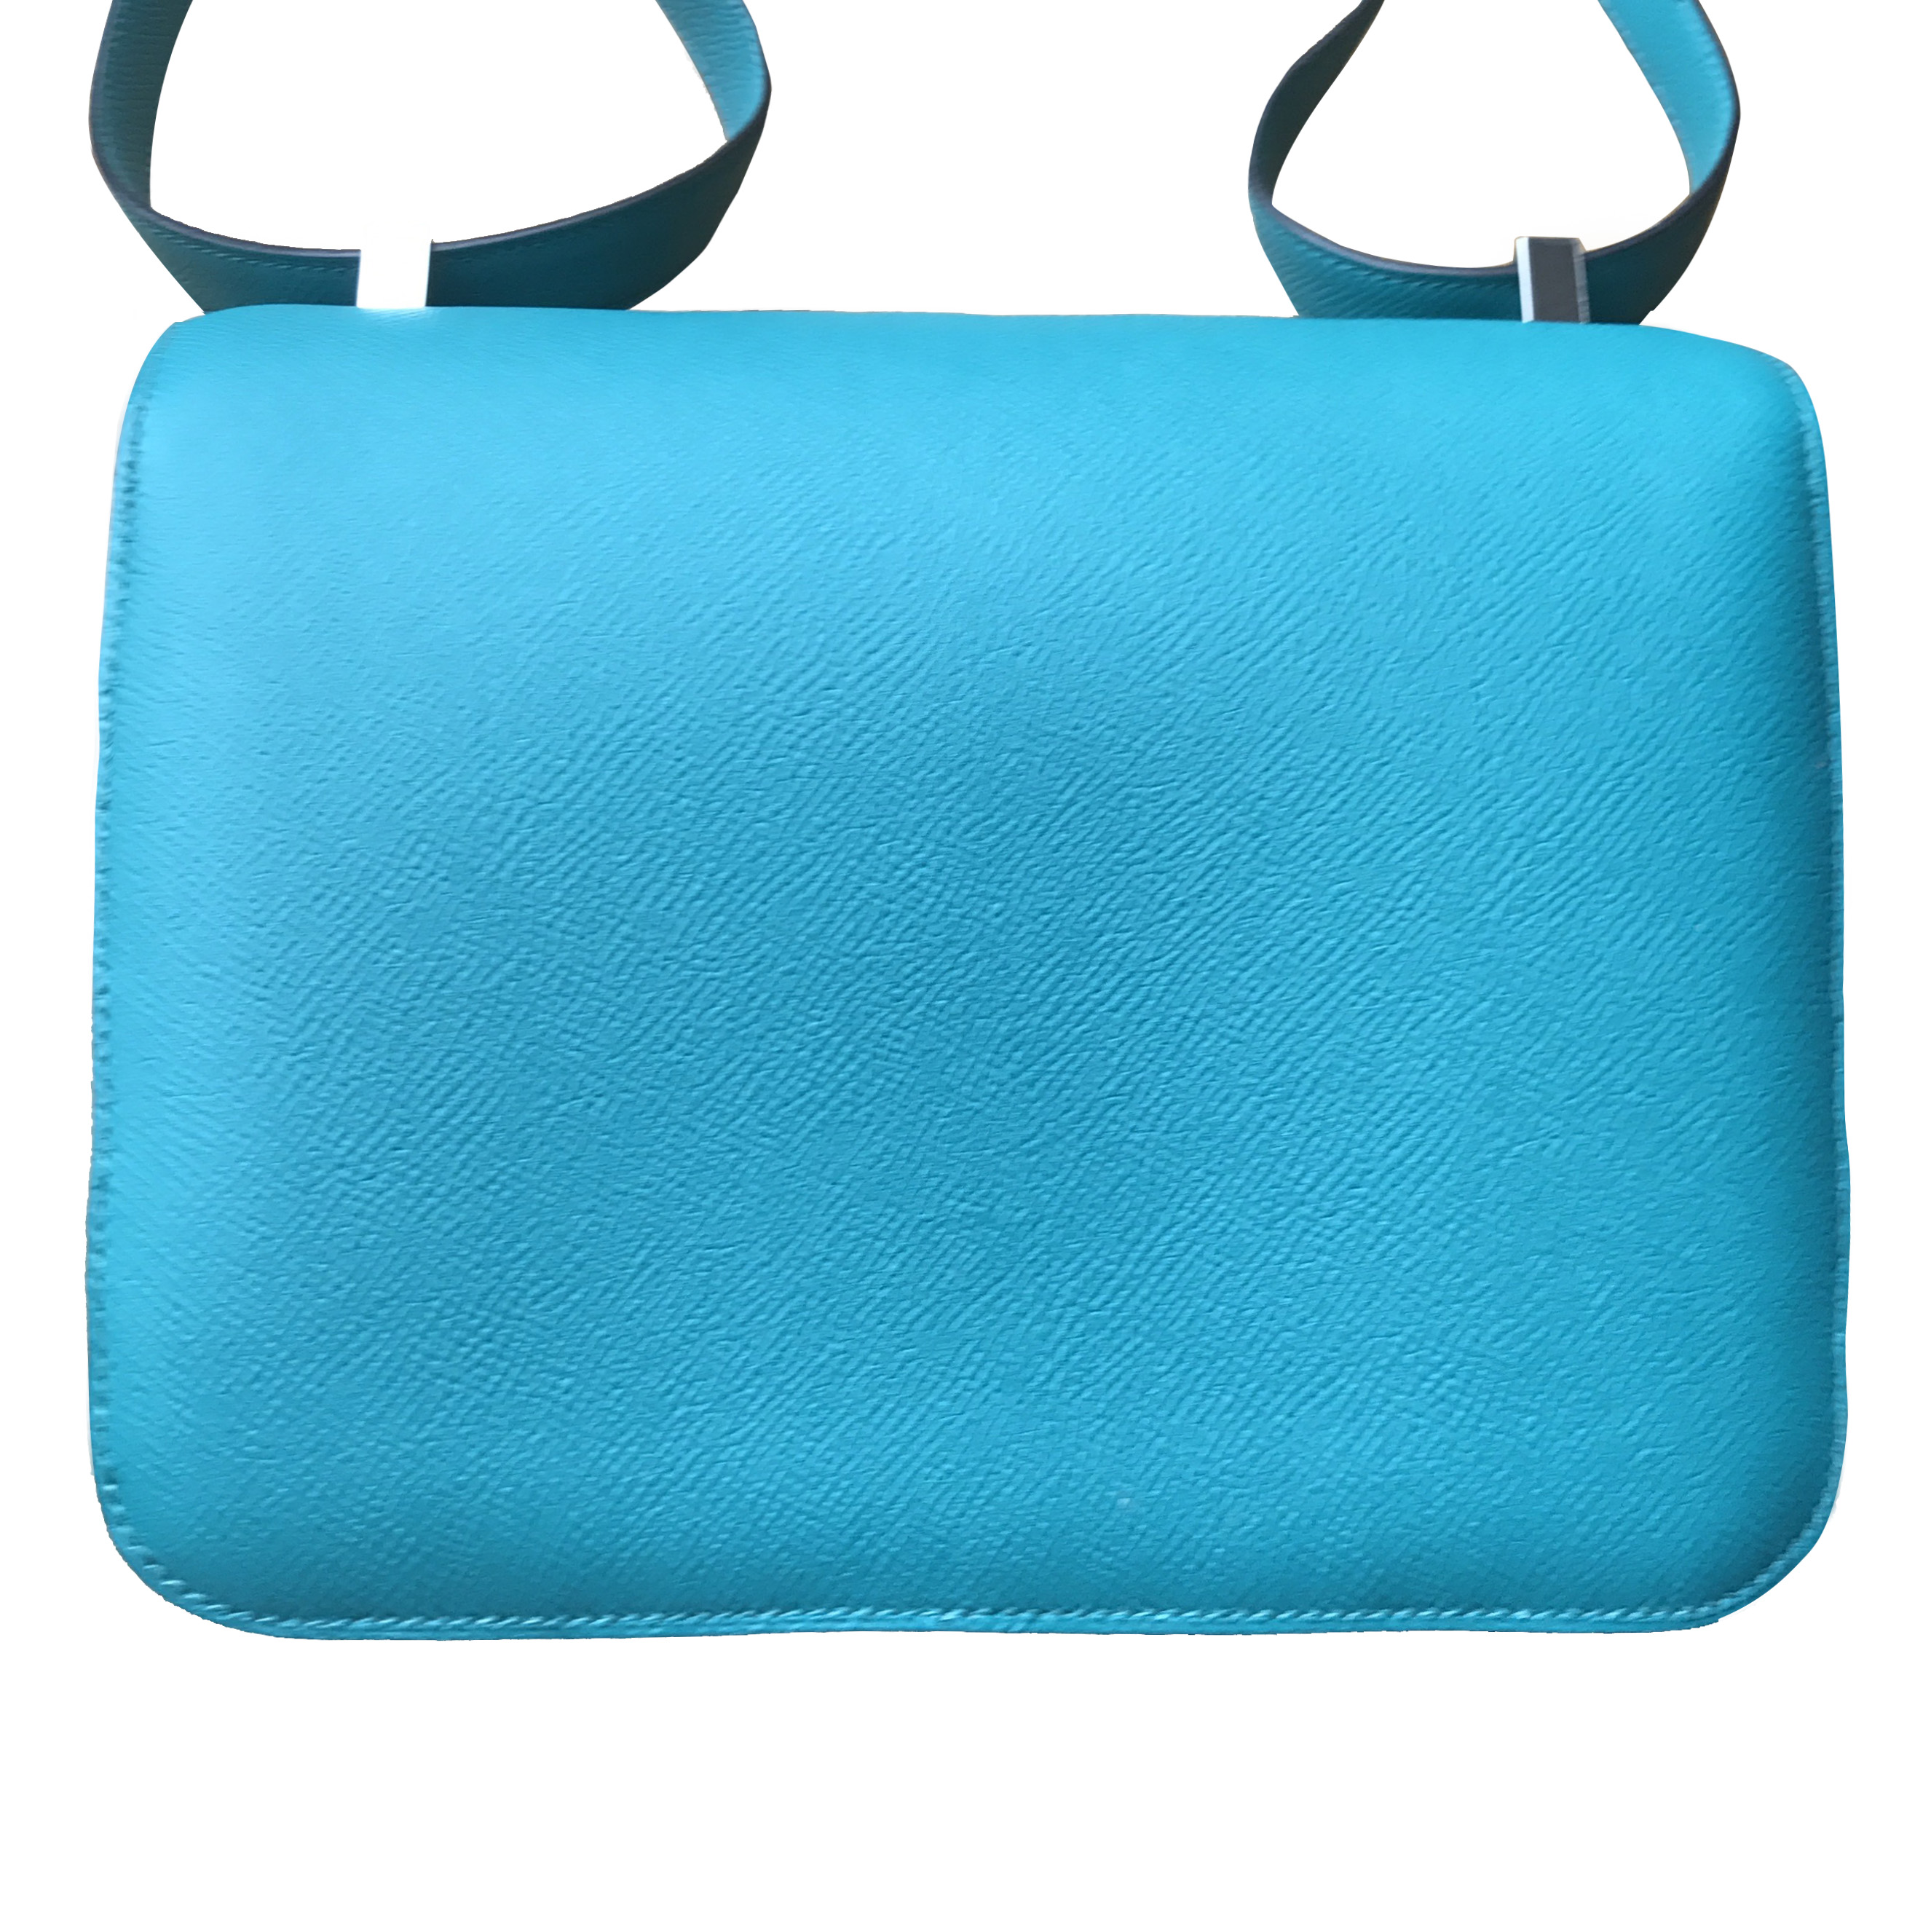 hermès constance 24 blue paon & mint now online at labellov.com